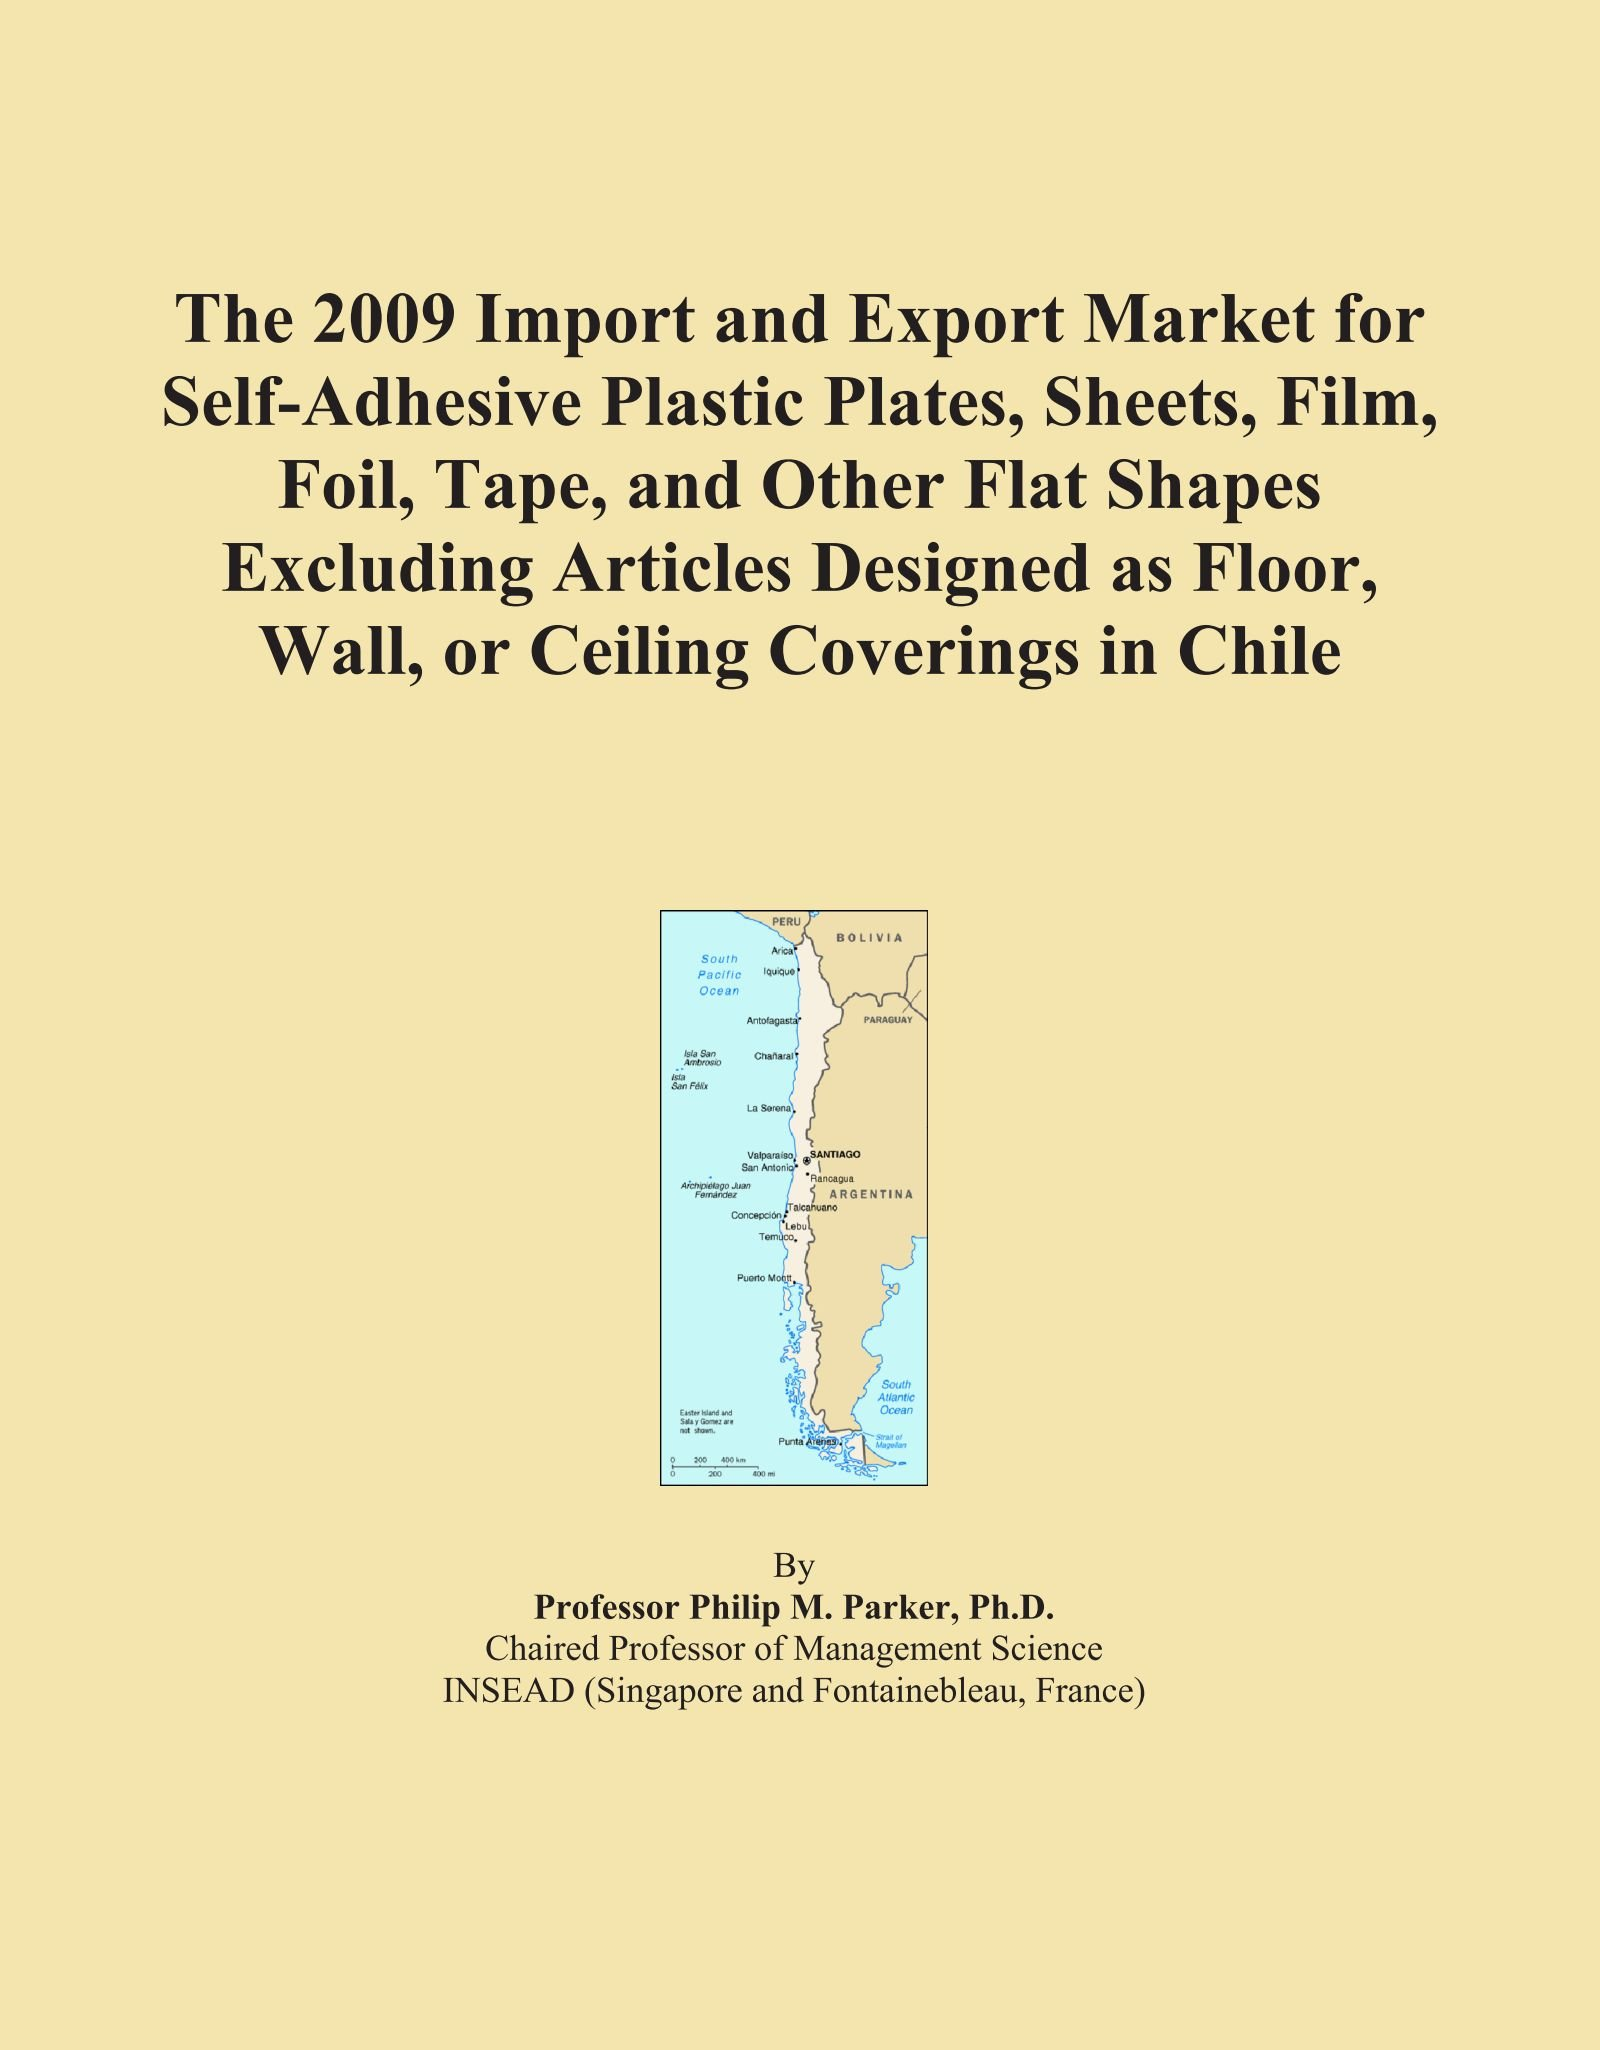 The 2009 Import and Export Market for Self-Adhesive Plastic Plates, Sheets, Film, Foil, Tape, and Other Flat Shapes Excluding Articles Designed as Floor, Wall, or Ceiling Coverings in Chile ebook